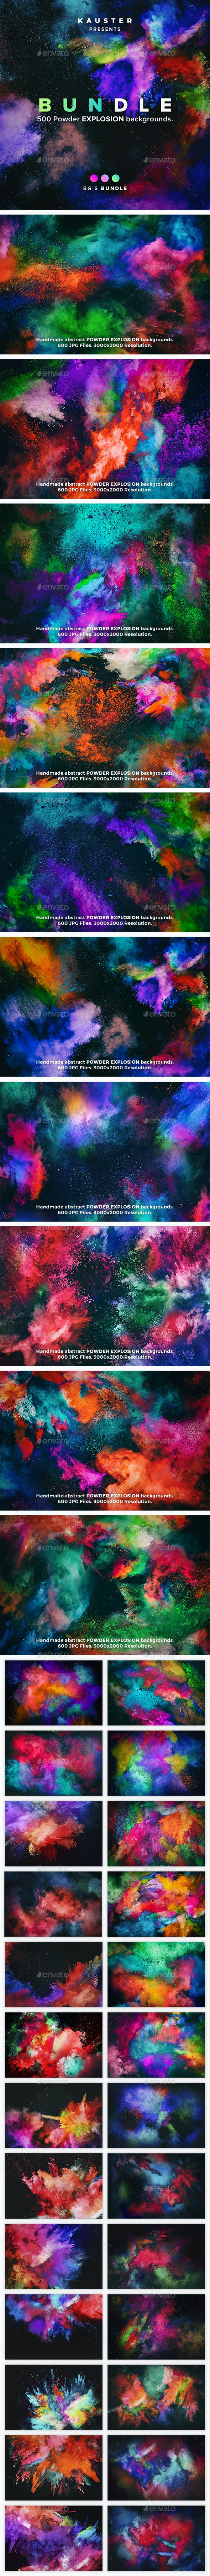 500 Powder Explosion Backgrounds Bundle - Abstract Backgrounds